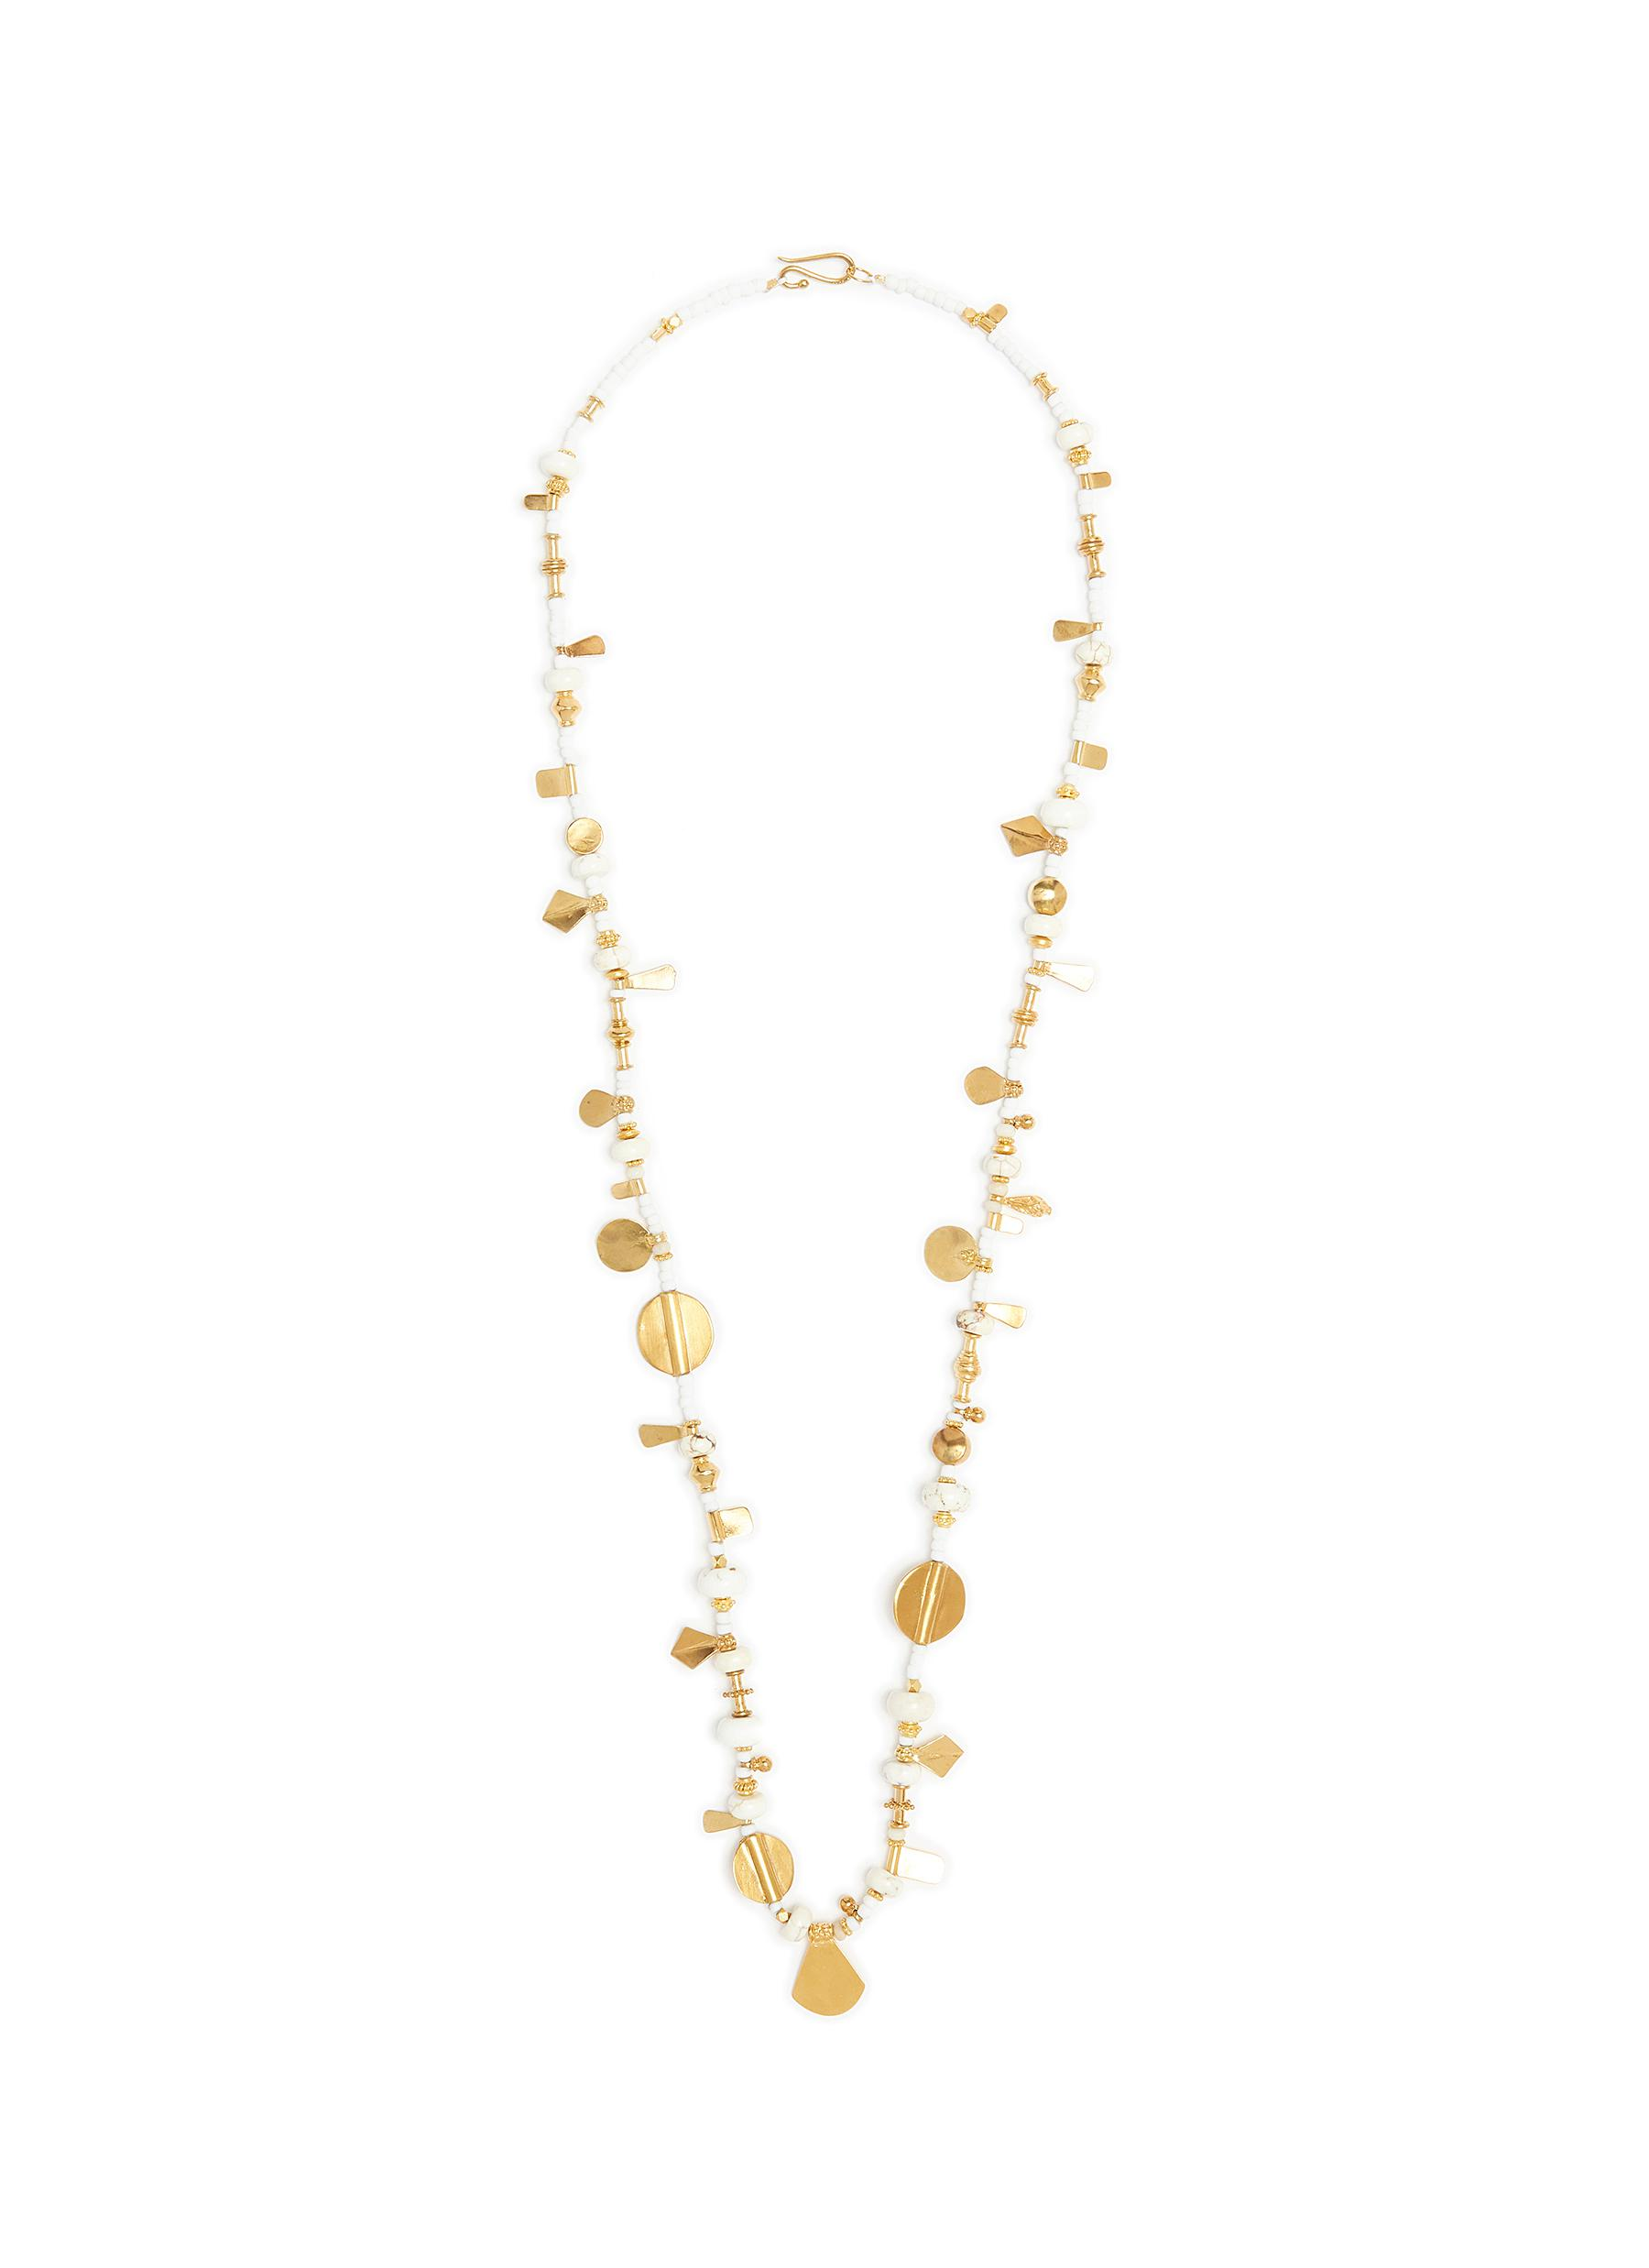 Star Dust' 24k gold plated silver bronze vermeil bead necklace